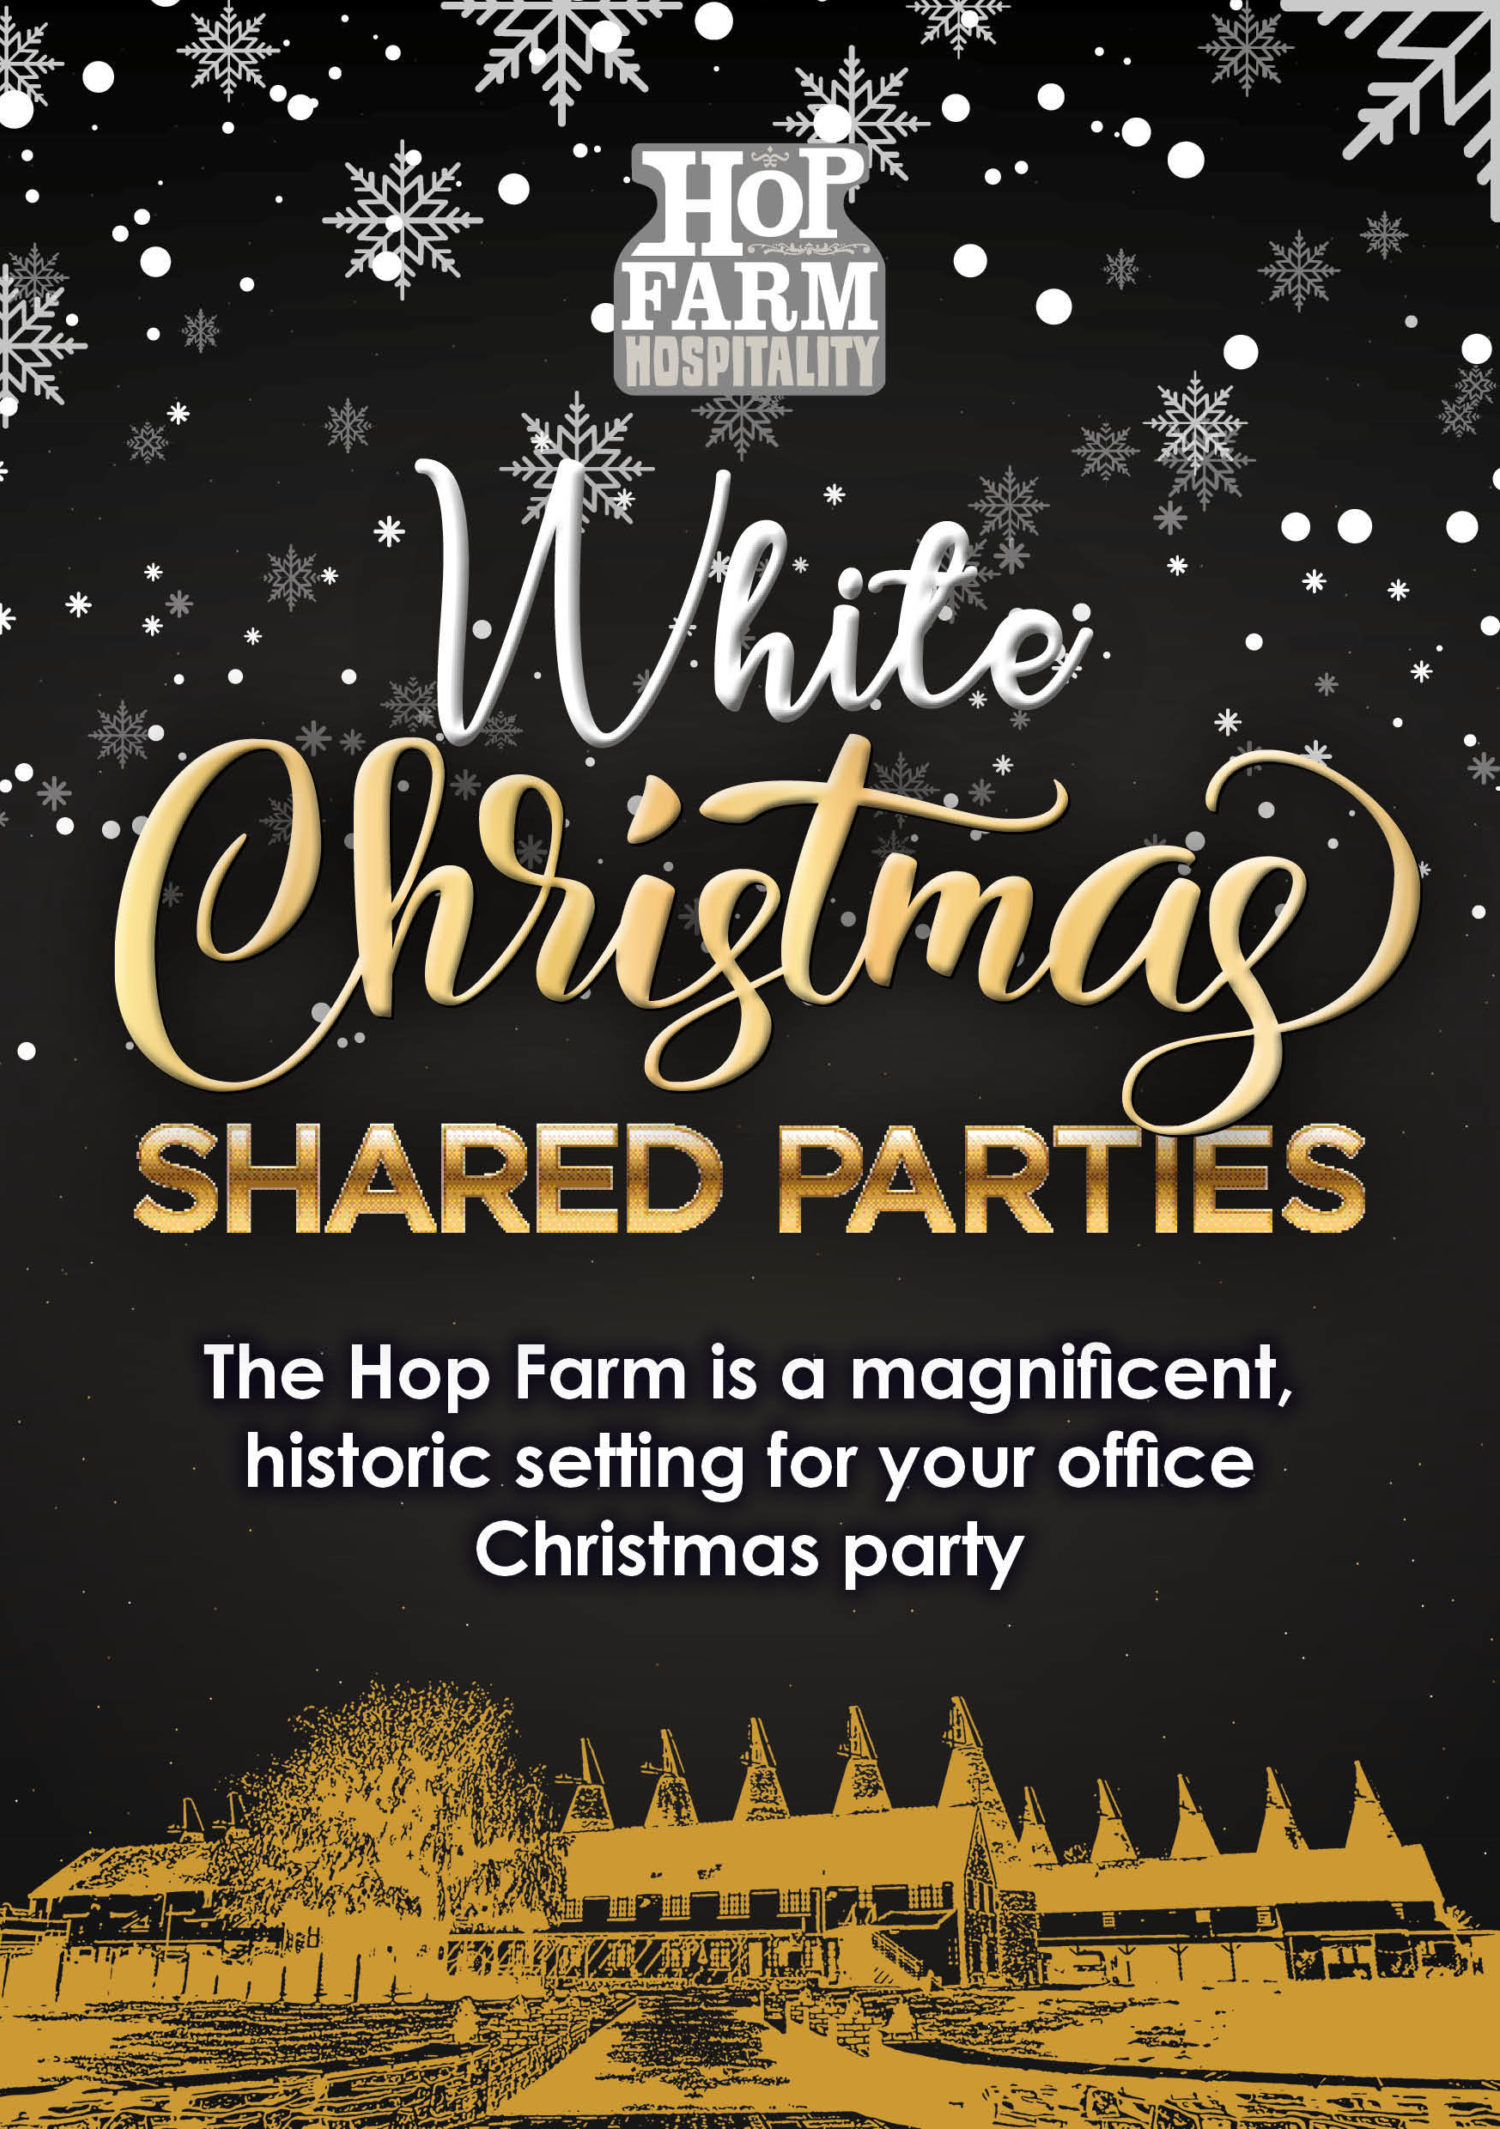 Hop Farm Christmas Parties A5 2Pp 2019 Shared